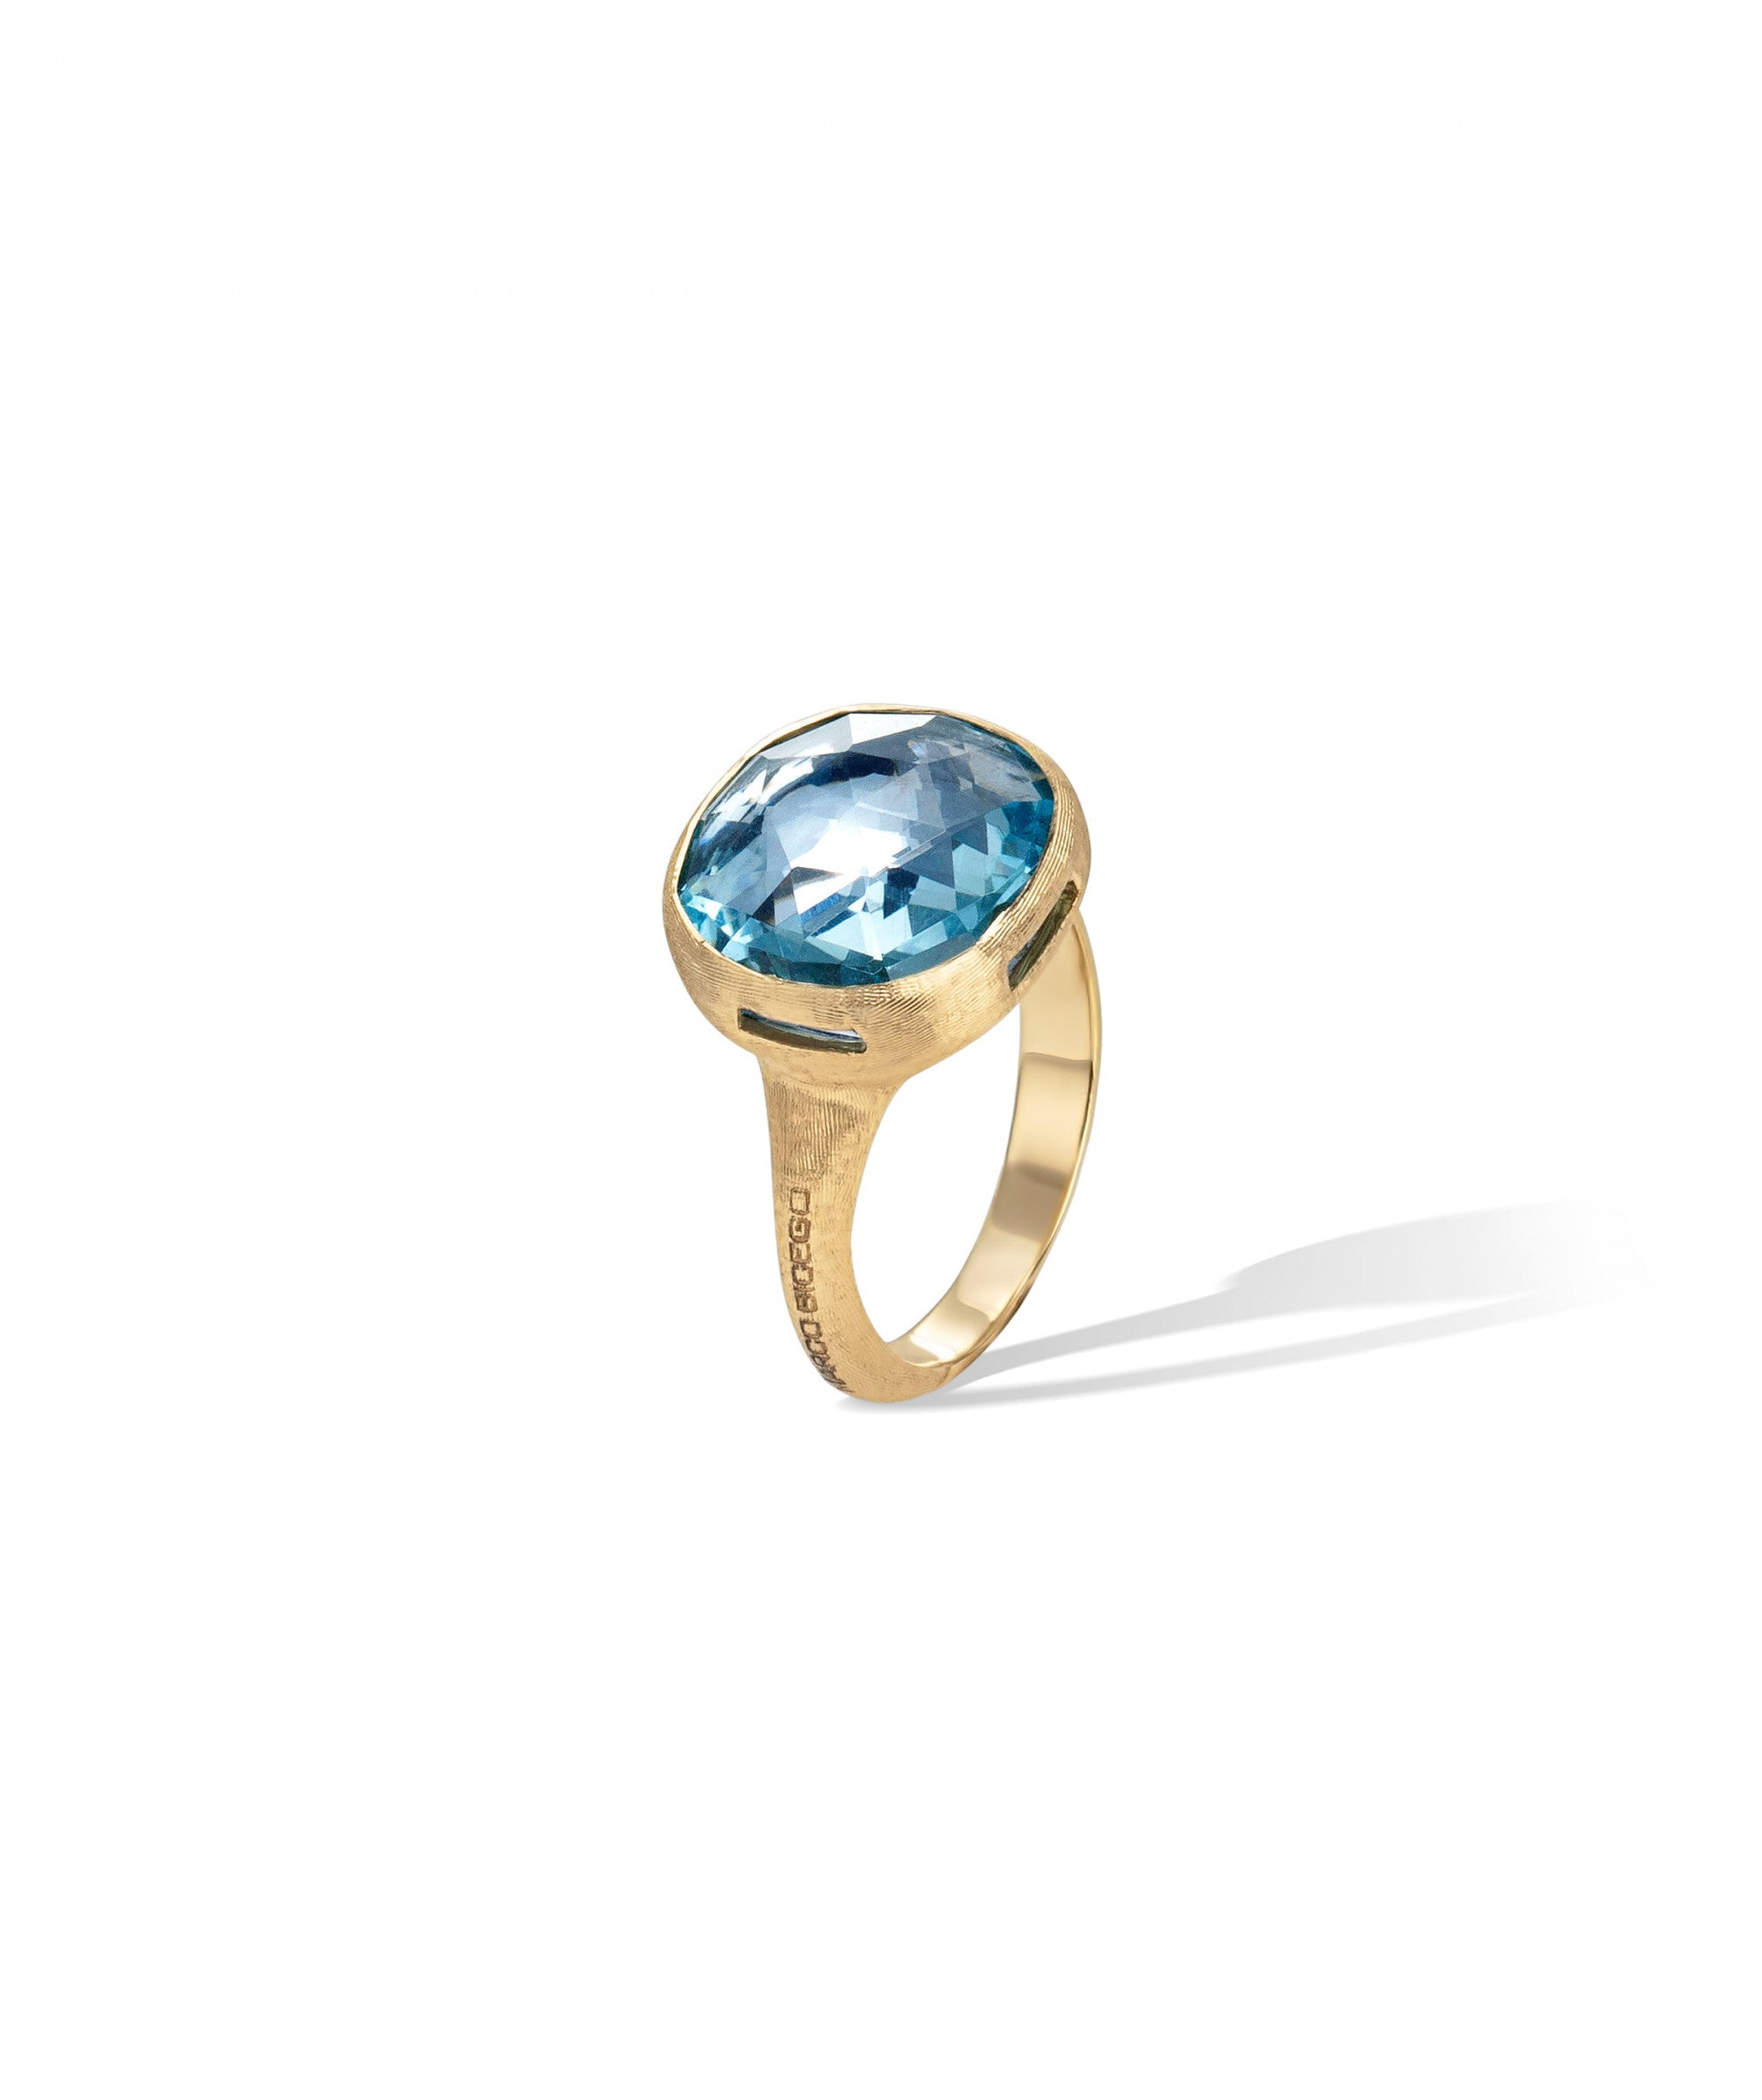 Jaipur Colour Ring in 18k Yellow Gold with Sky Blue Topaz Large - Orsini Jewellers NZ